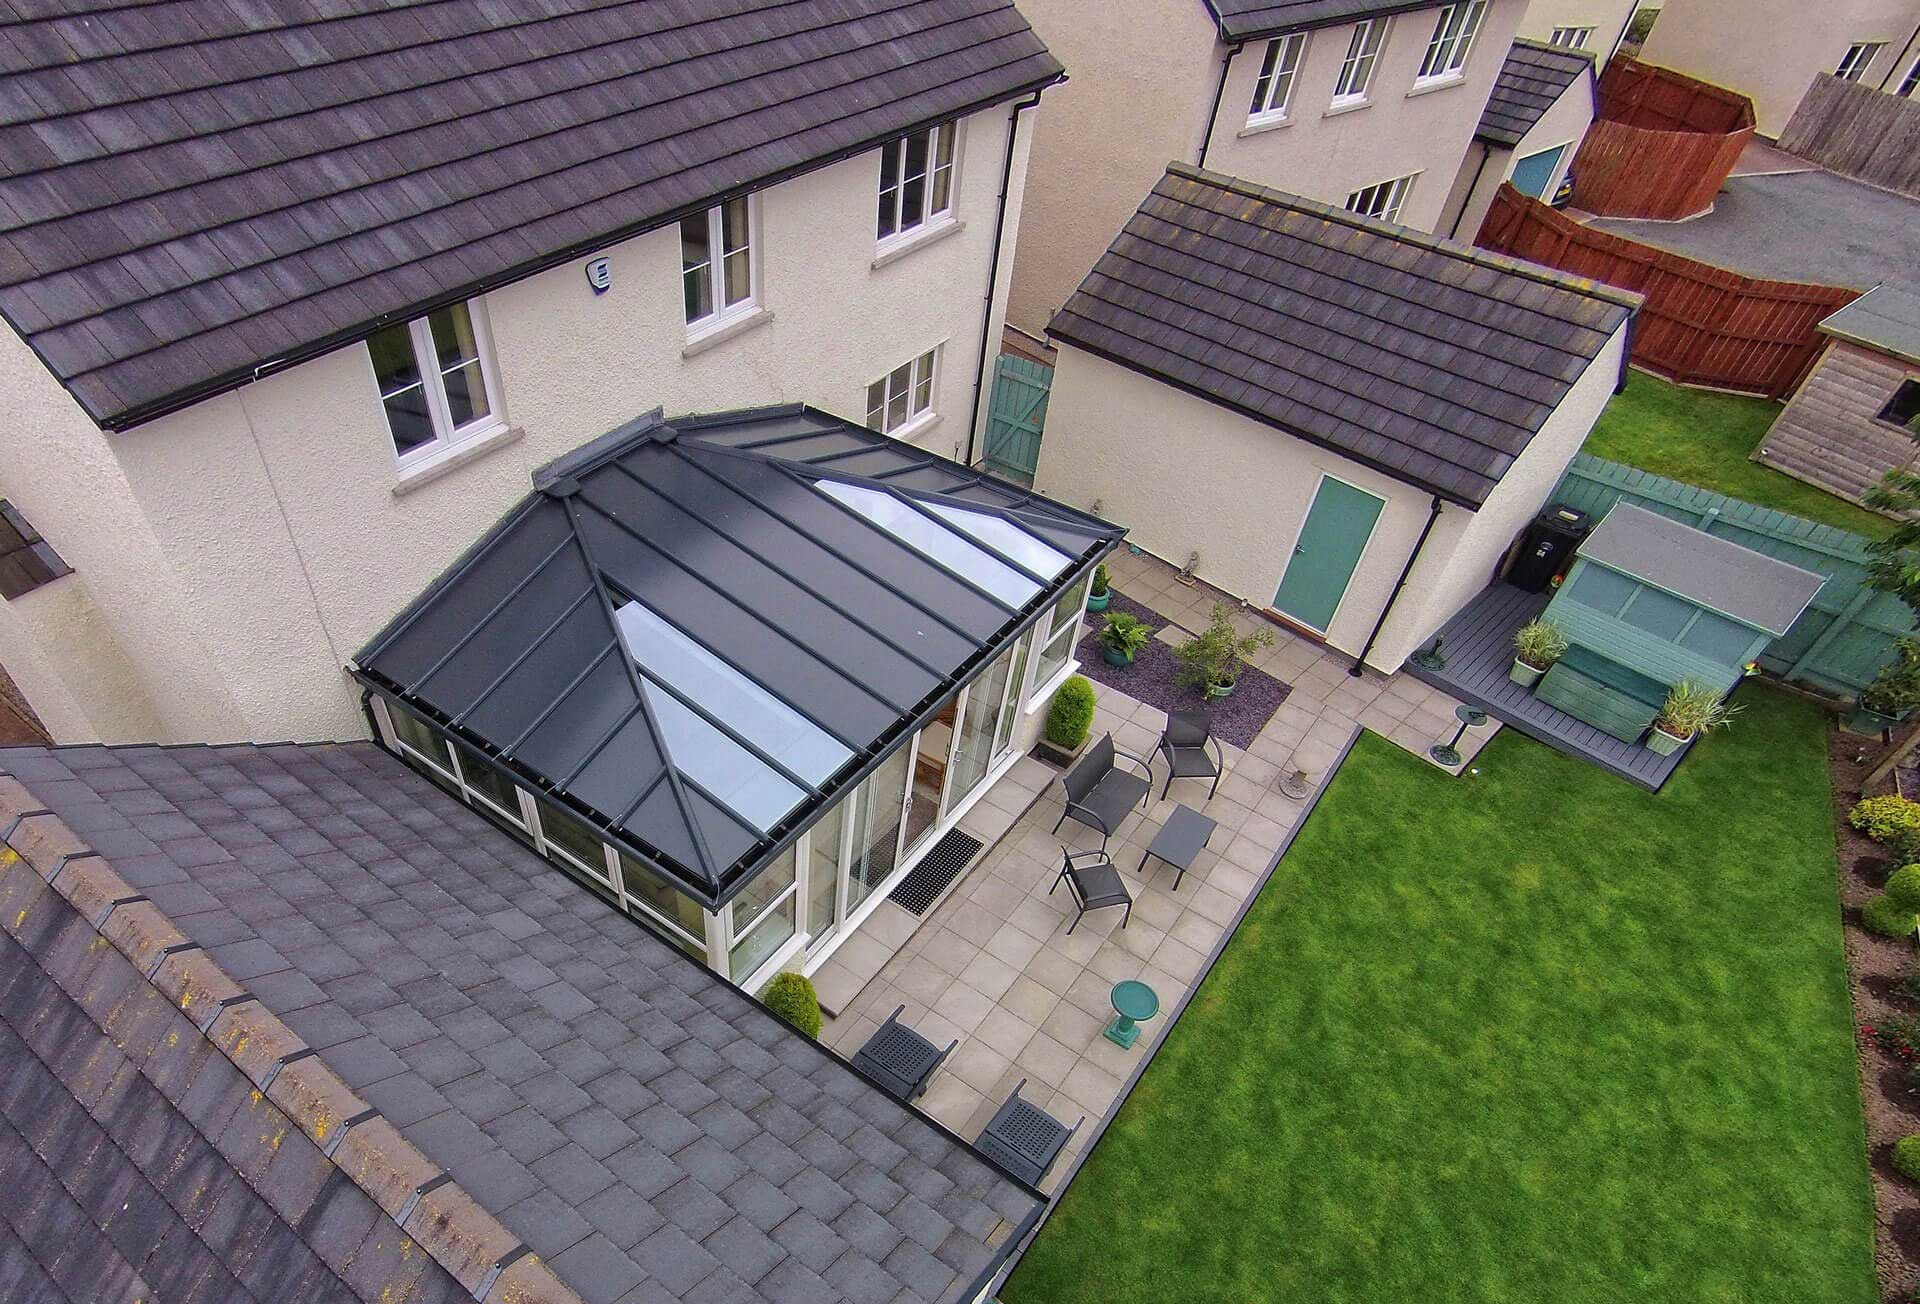 double glazed Conservatory Roofs harrogate